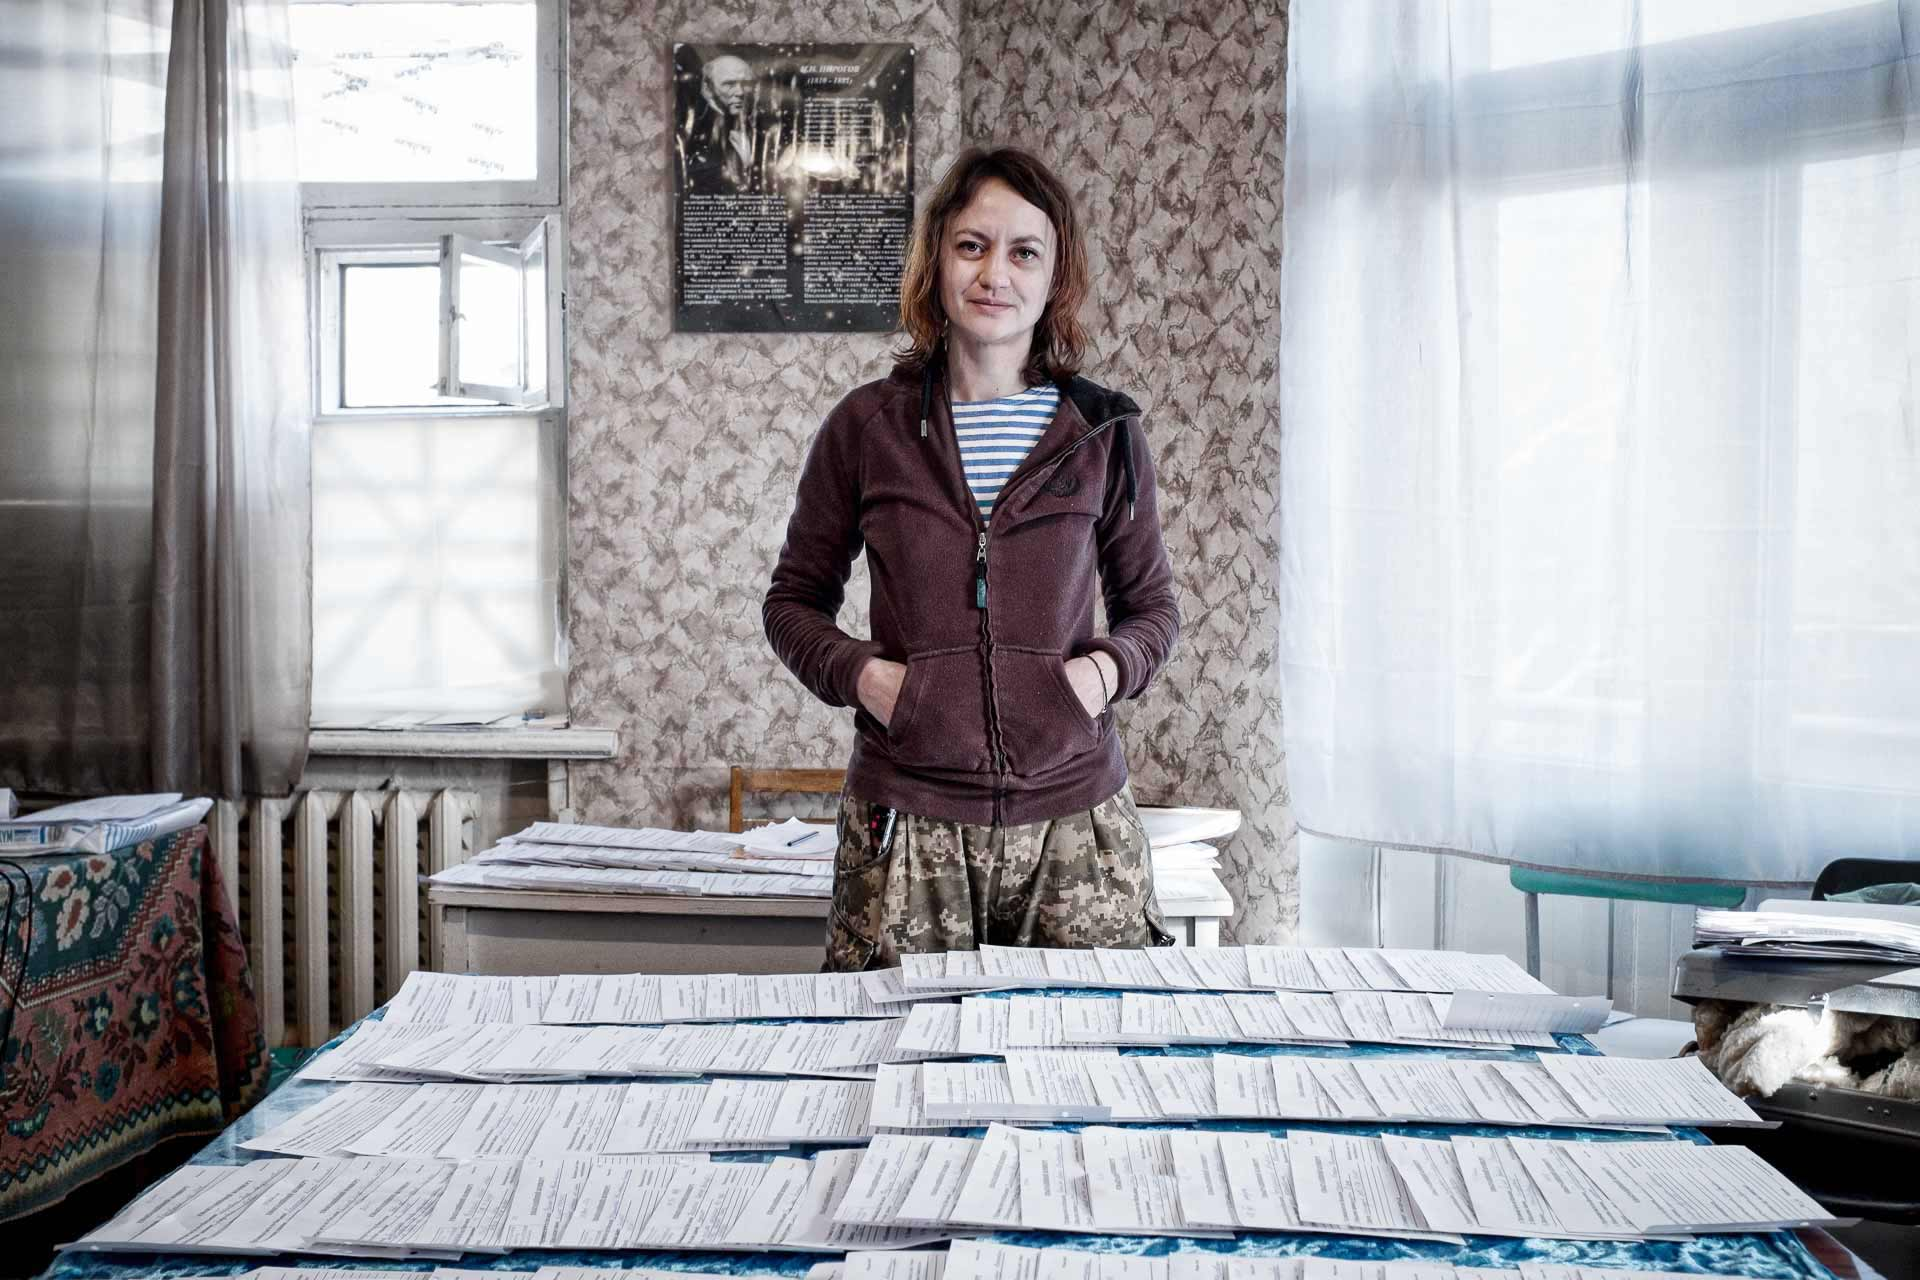 Natasha, volunteer from Kyiv, 36, works at the administration of the Artemivsk militay hospital. Bakhmout - UKRAINE